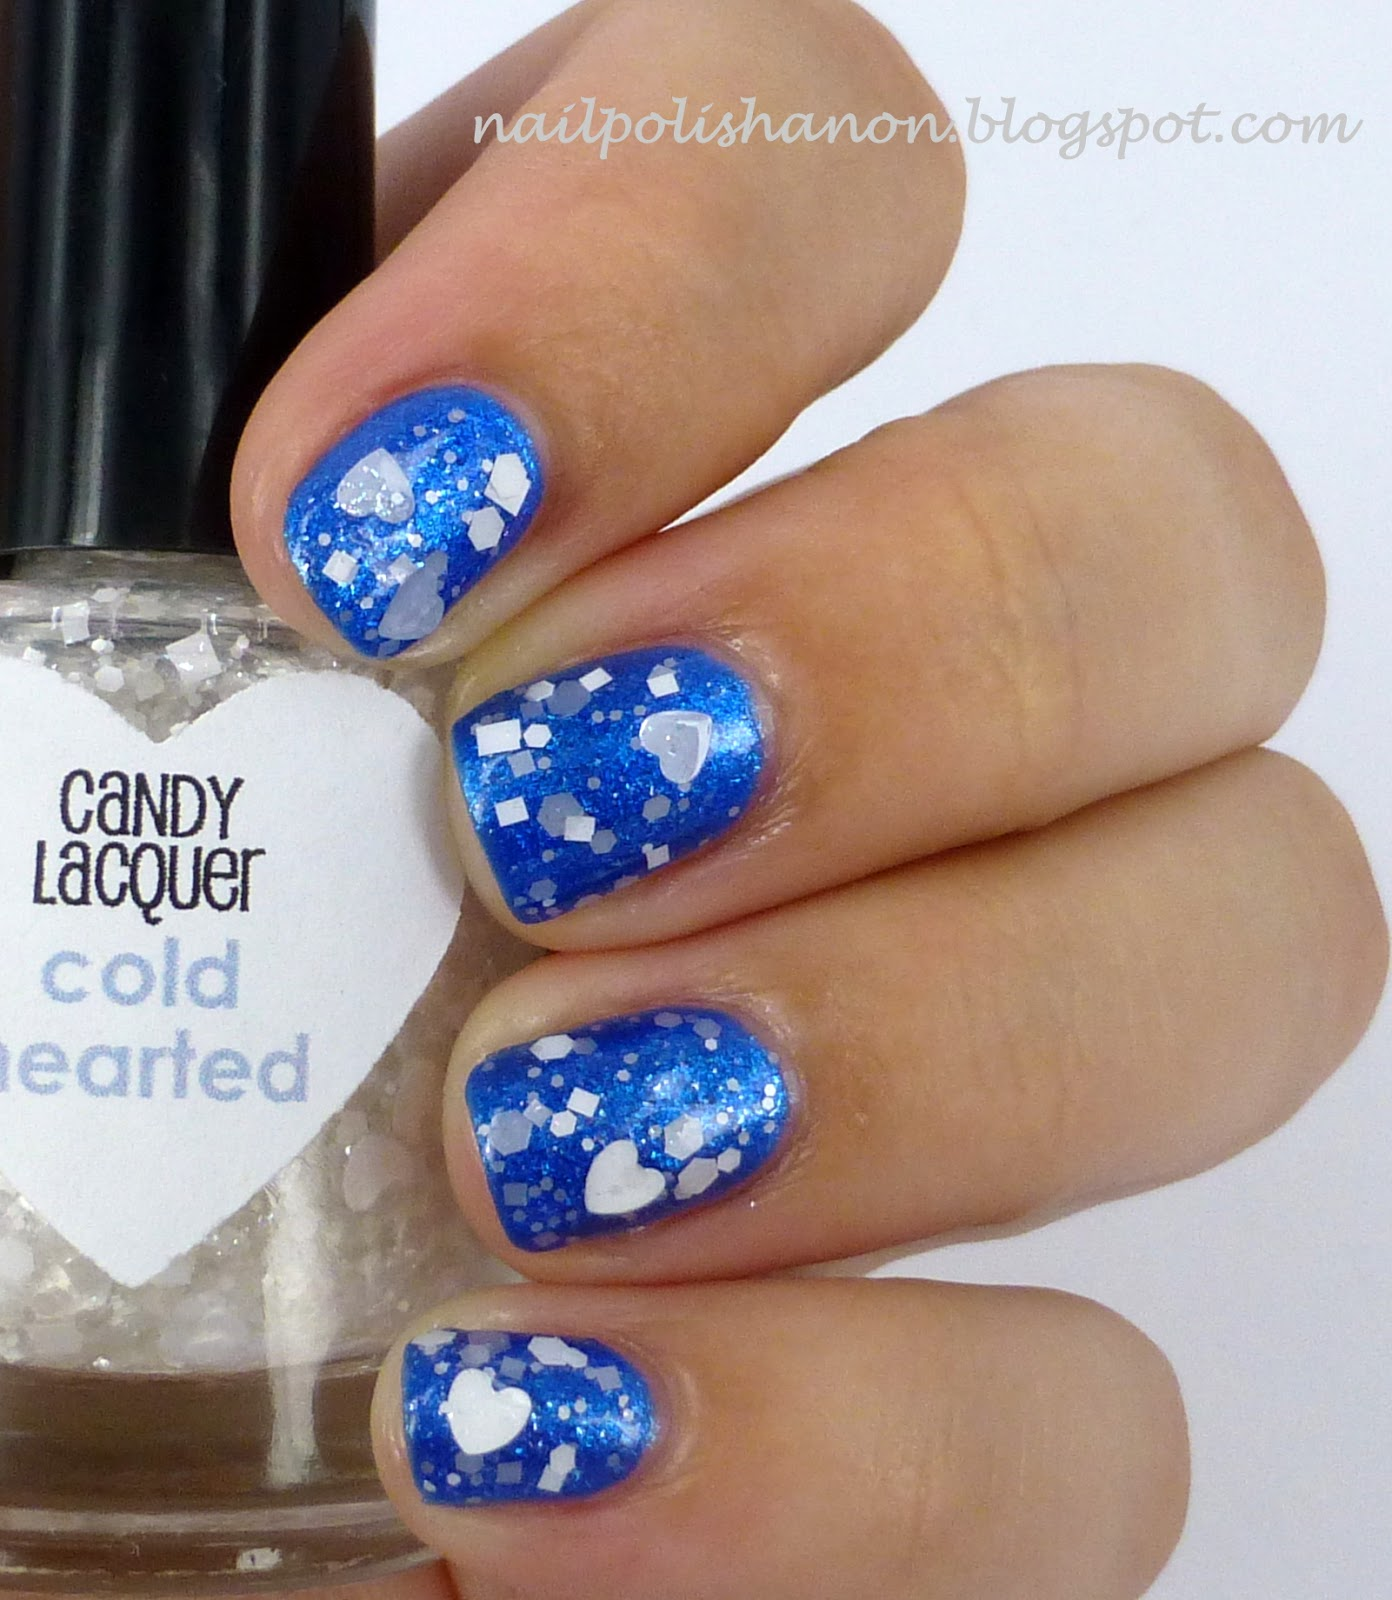 Candy Lacquer Cold Hearted Over Dollish Polish A Bad Case Of Blue Balls